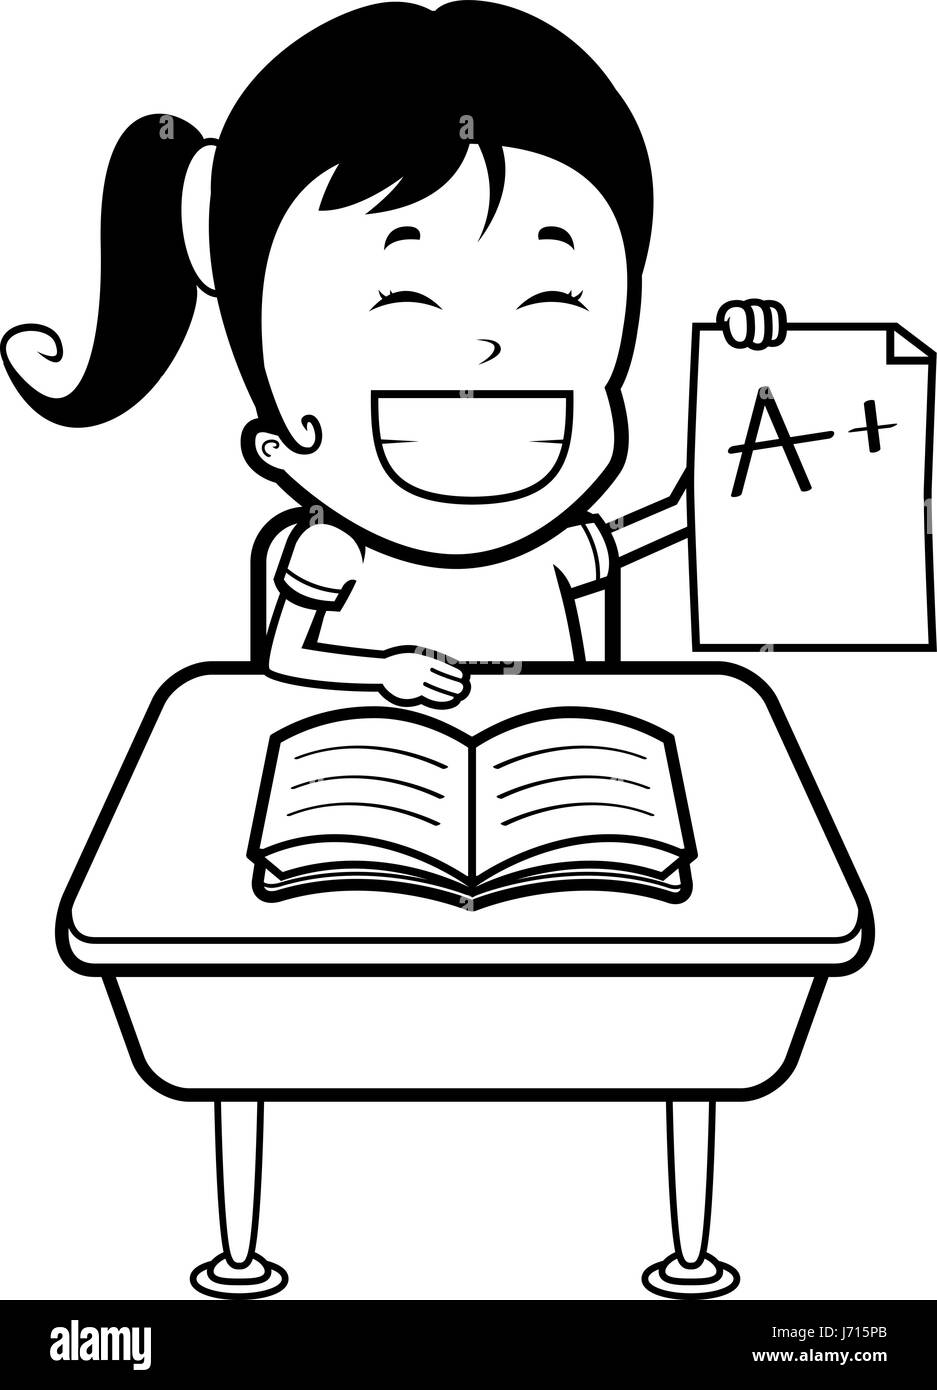 hight resolution of a happy cartoon girl student with good grades